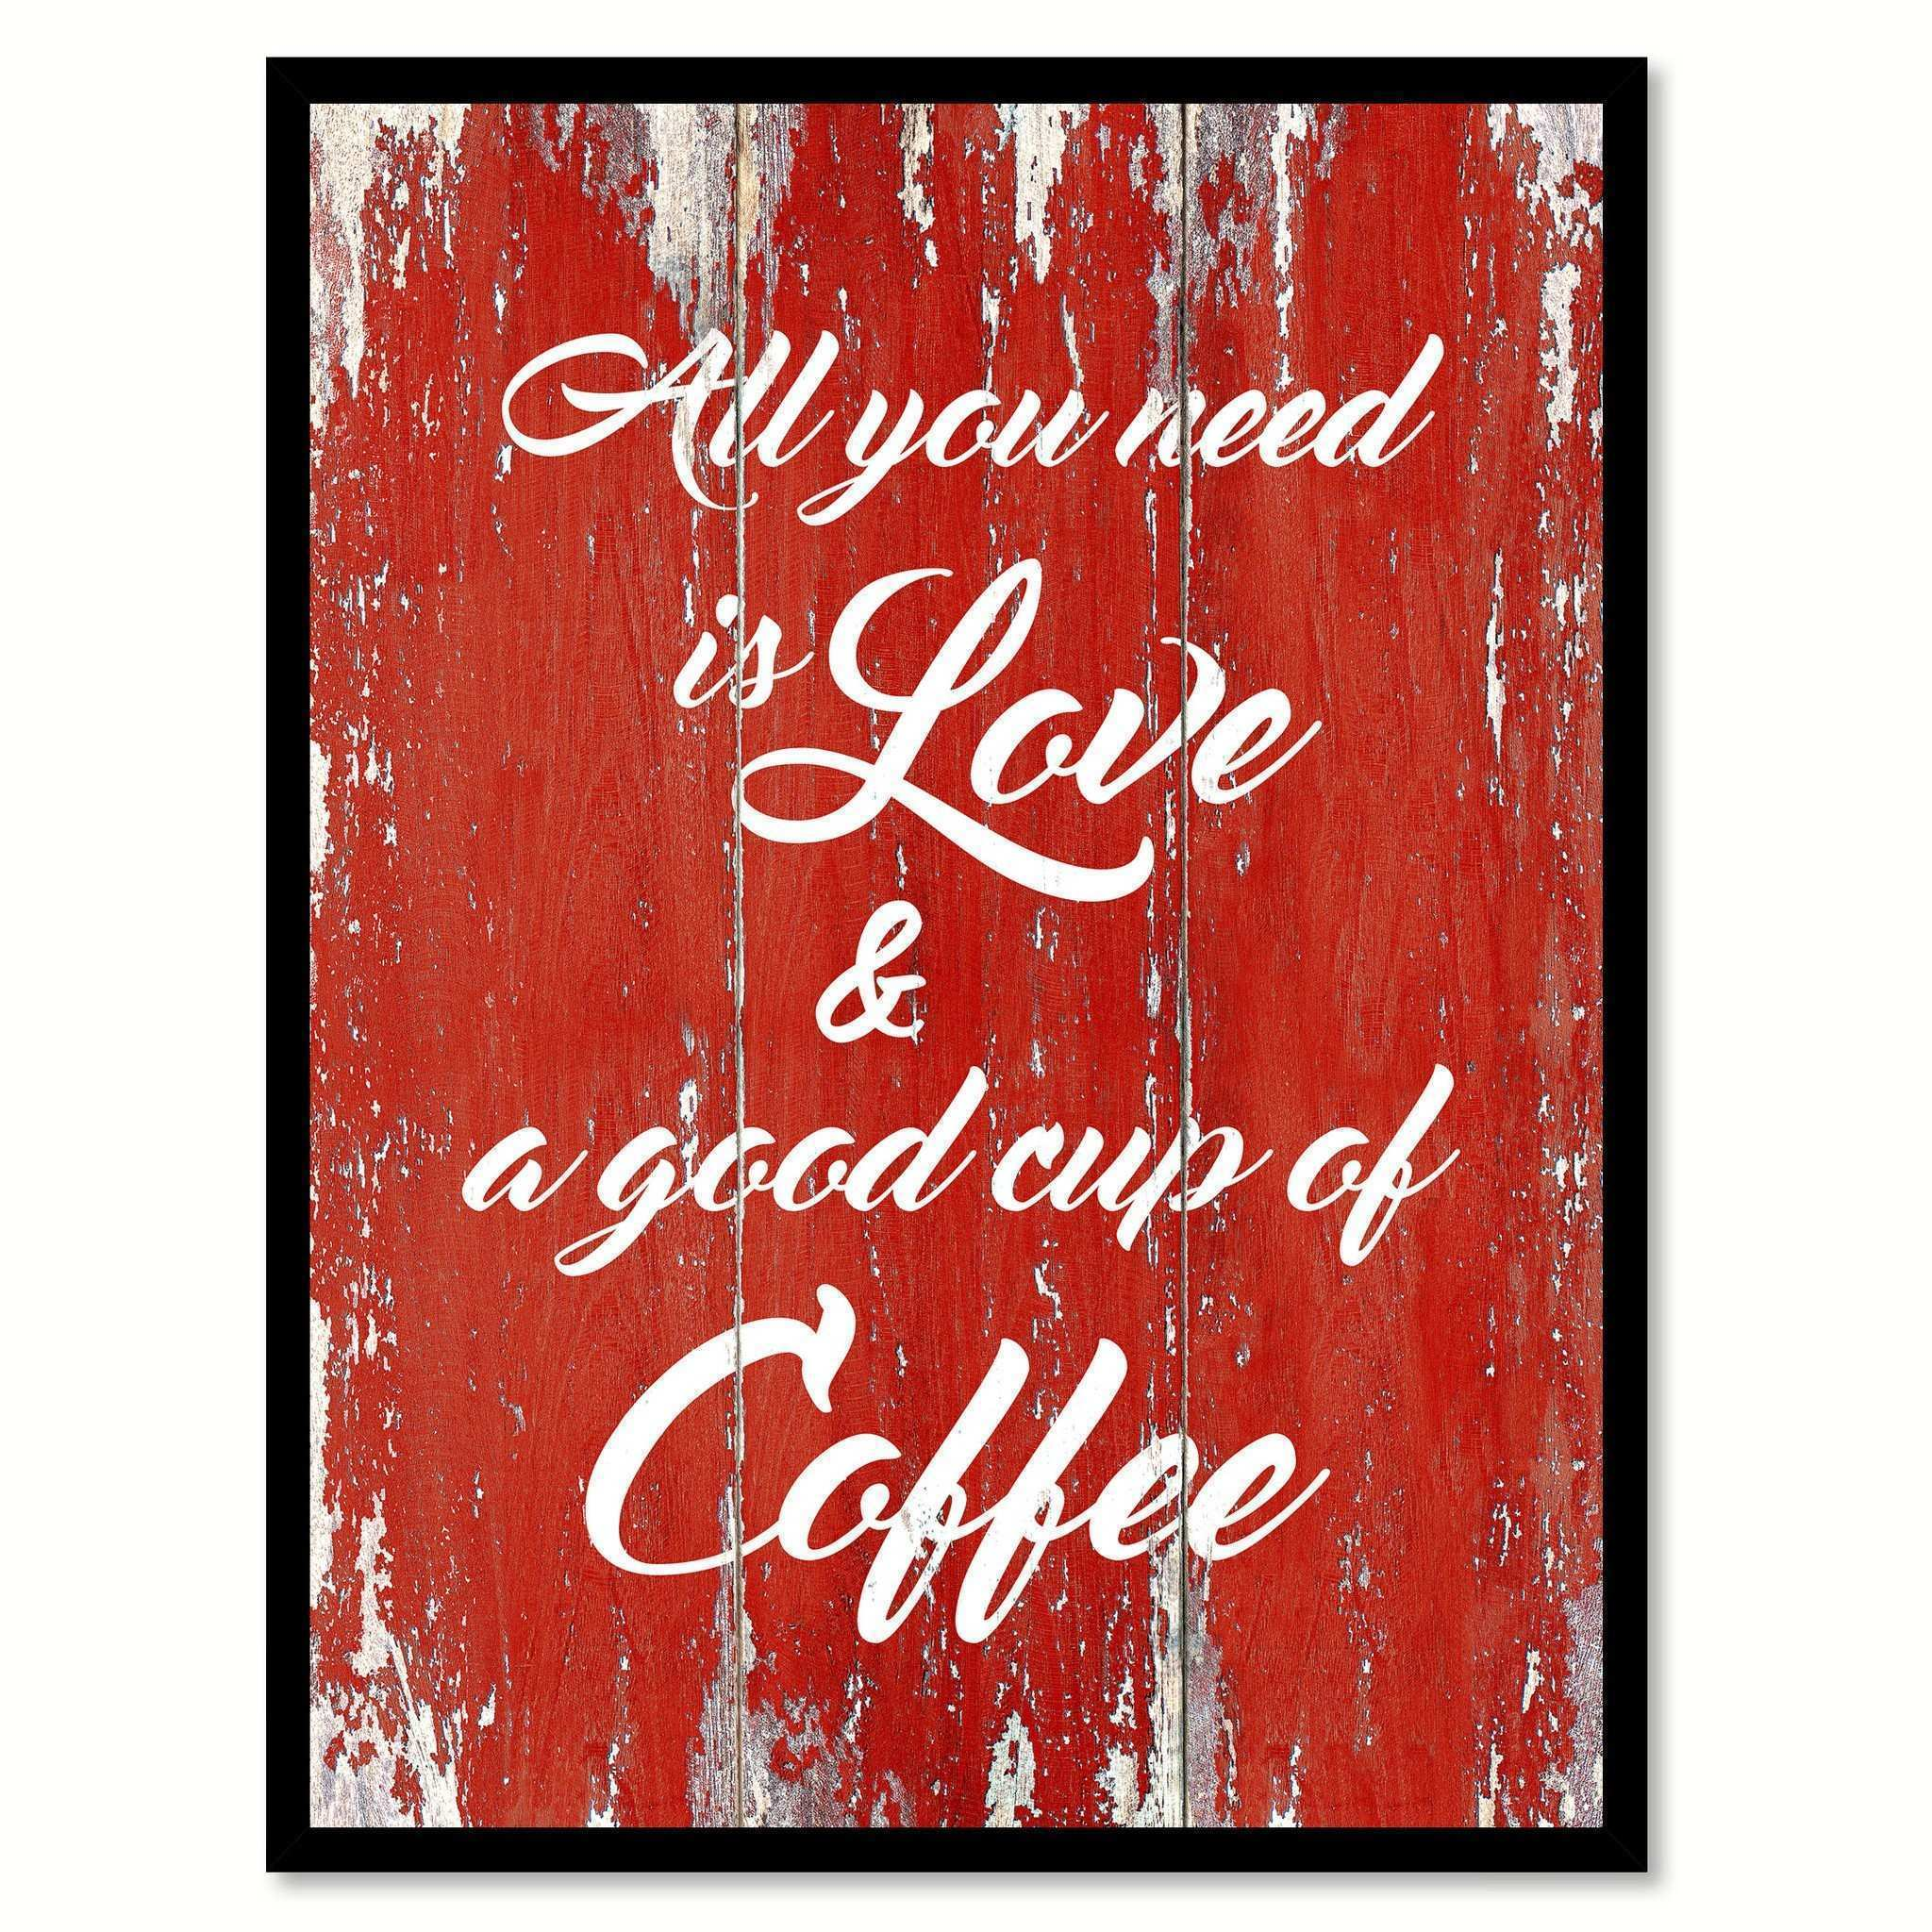 All I Care About Is Coffee & Like Two People Coffee Wine Saying